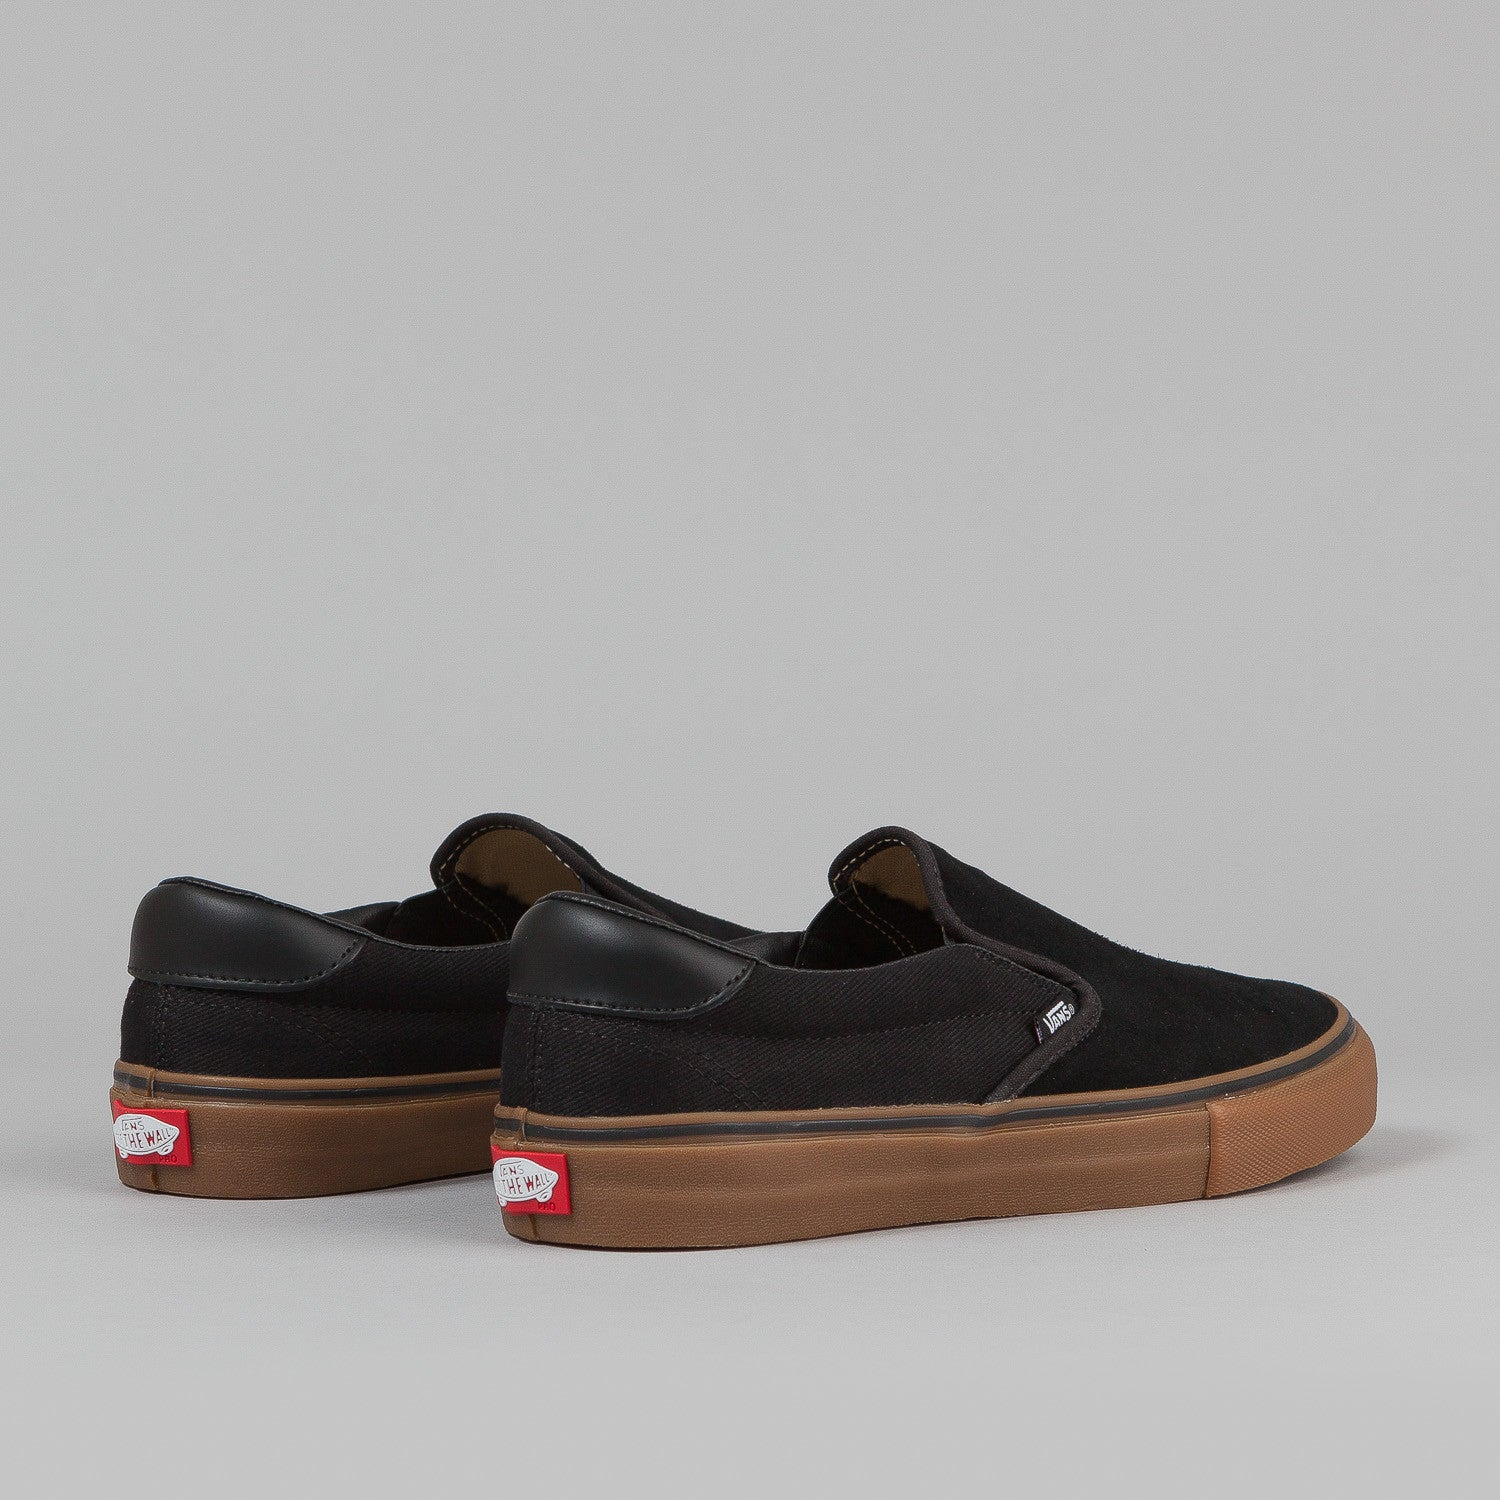 Vans Slip On 59 Pro Shoes - (Antihero) Black / Allen